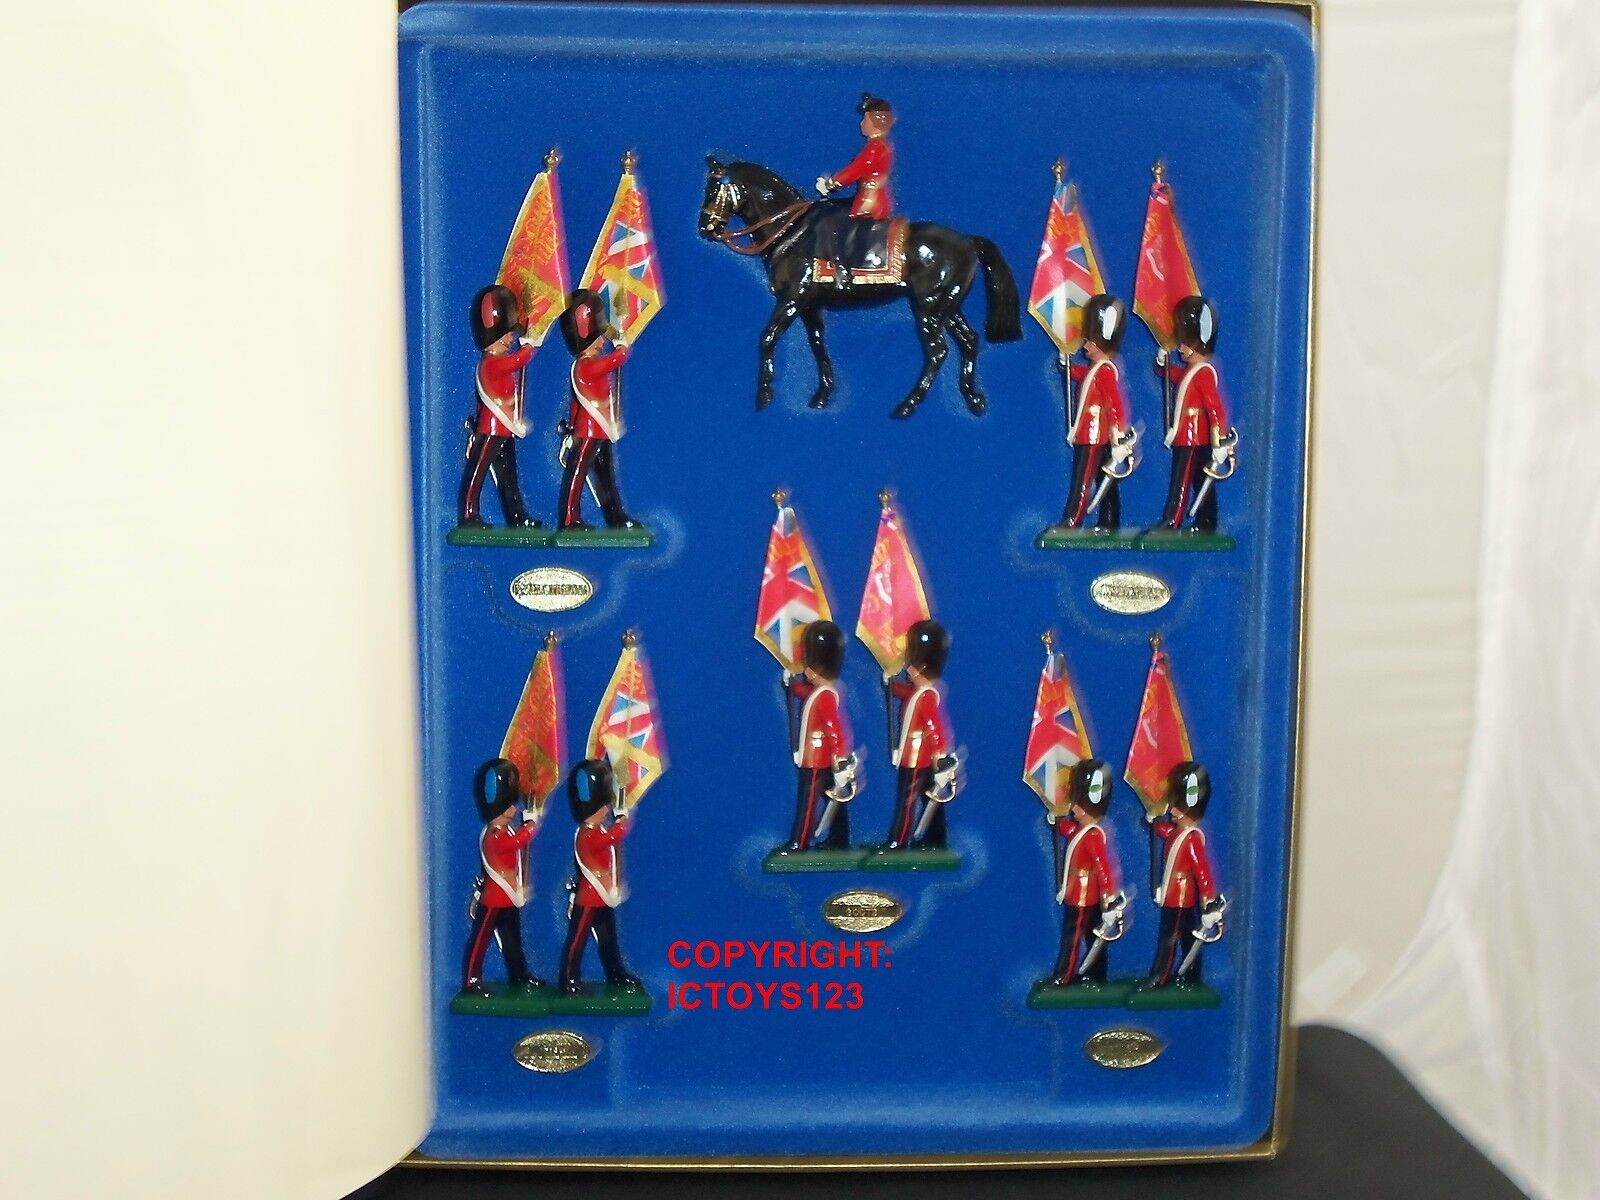 BRITAINS TROOPING THE COLOUR HM QUEEN QUEEN QUEEN + GUARDSMEN BOOK + TOY SOLDIER FIGURE SET 9edf37